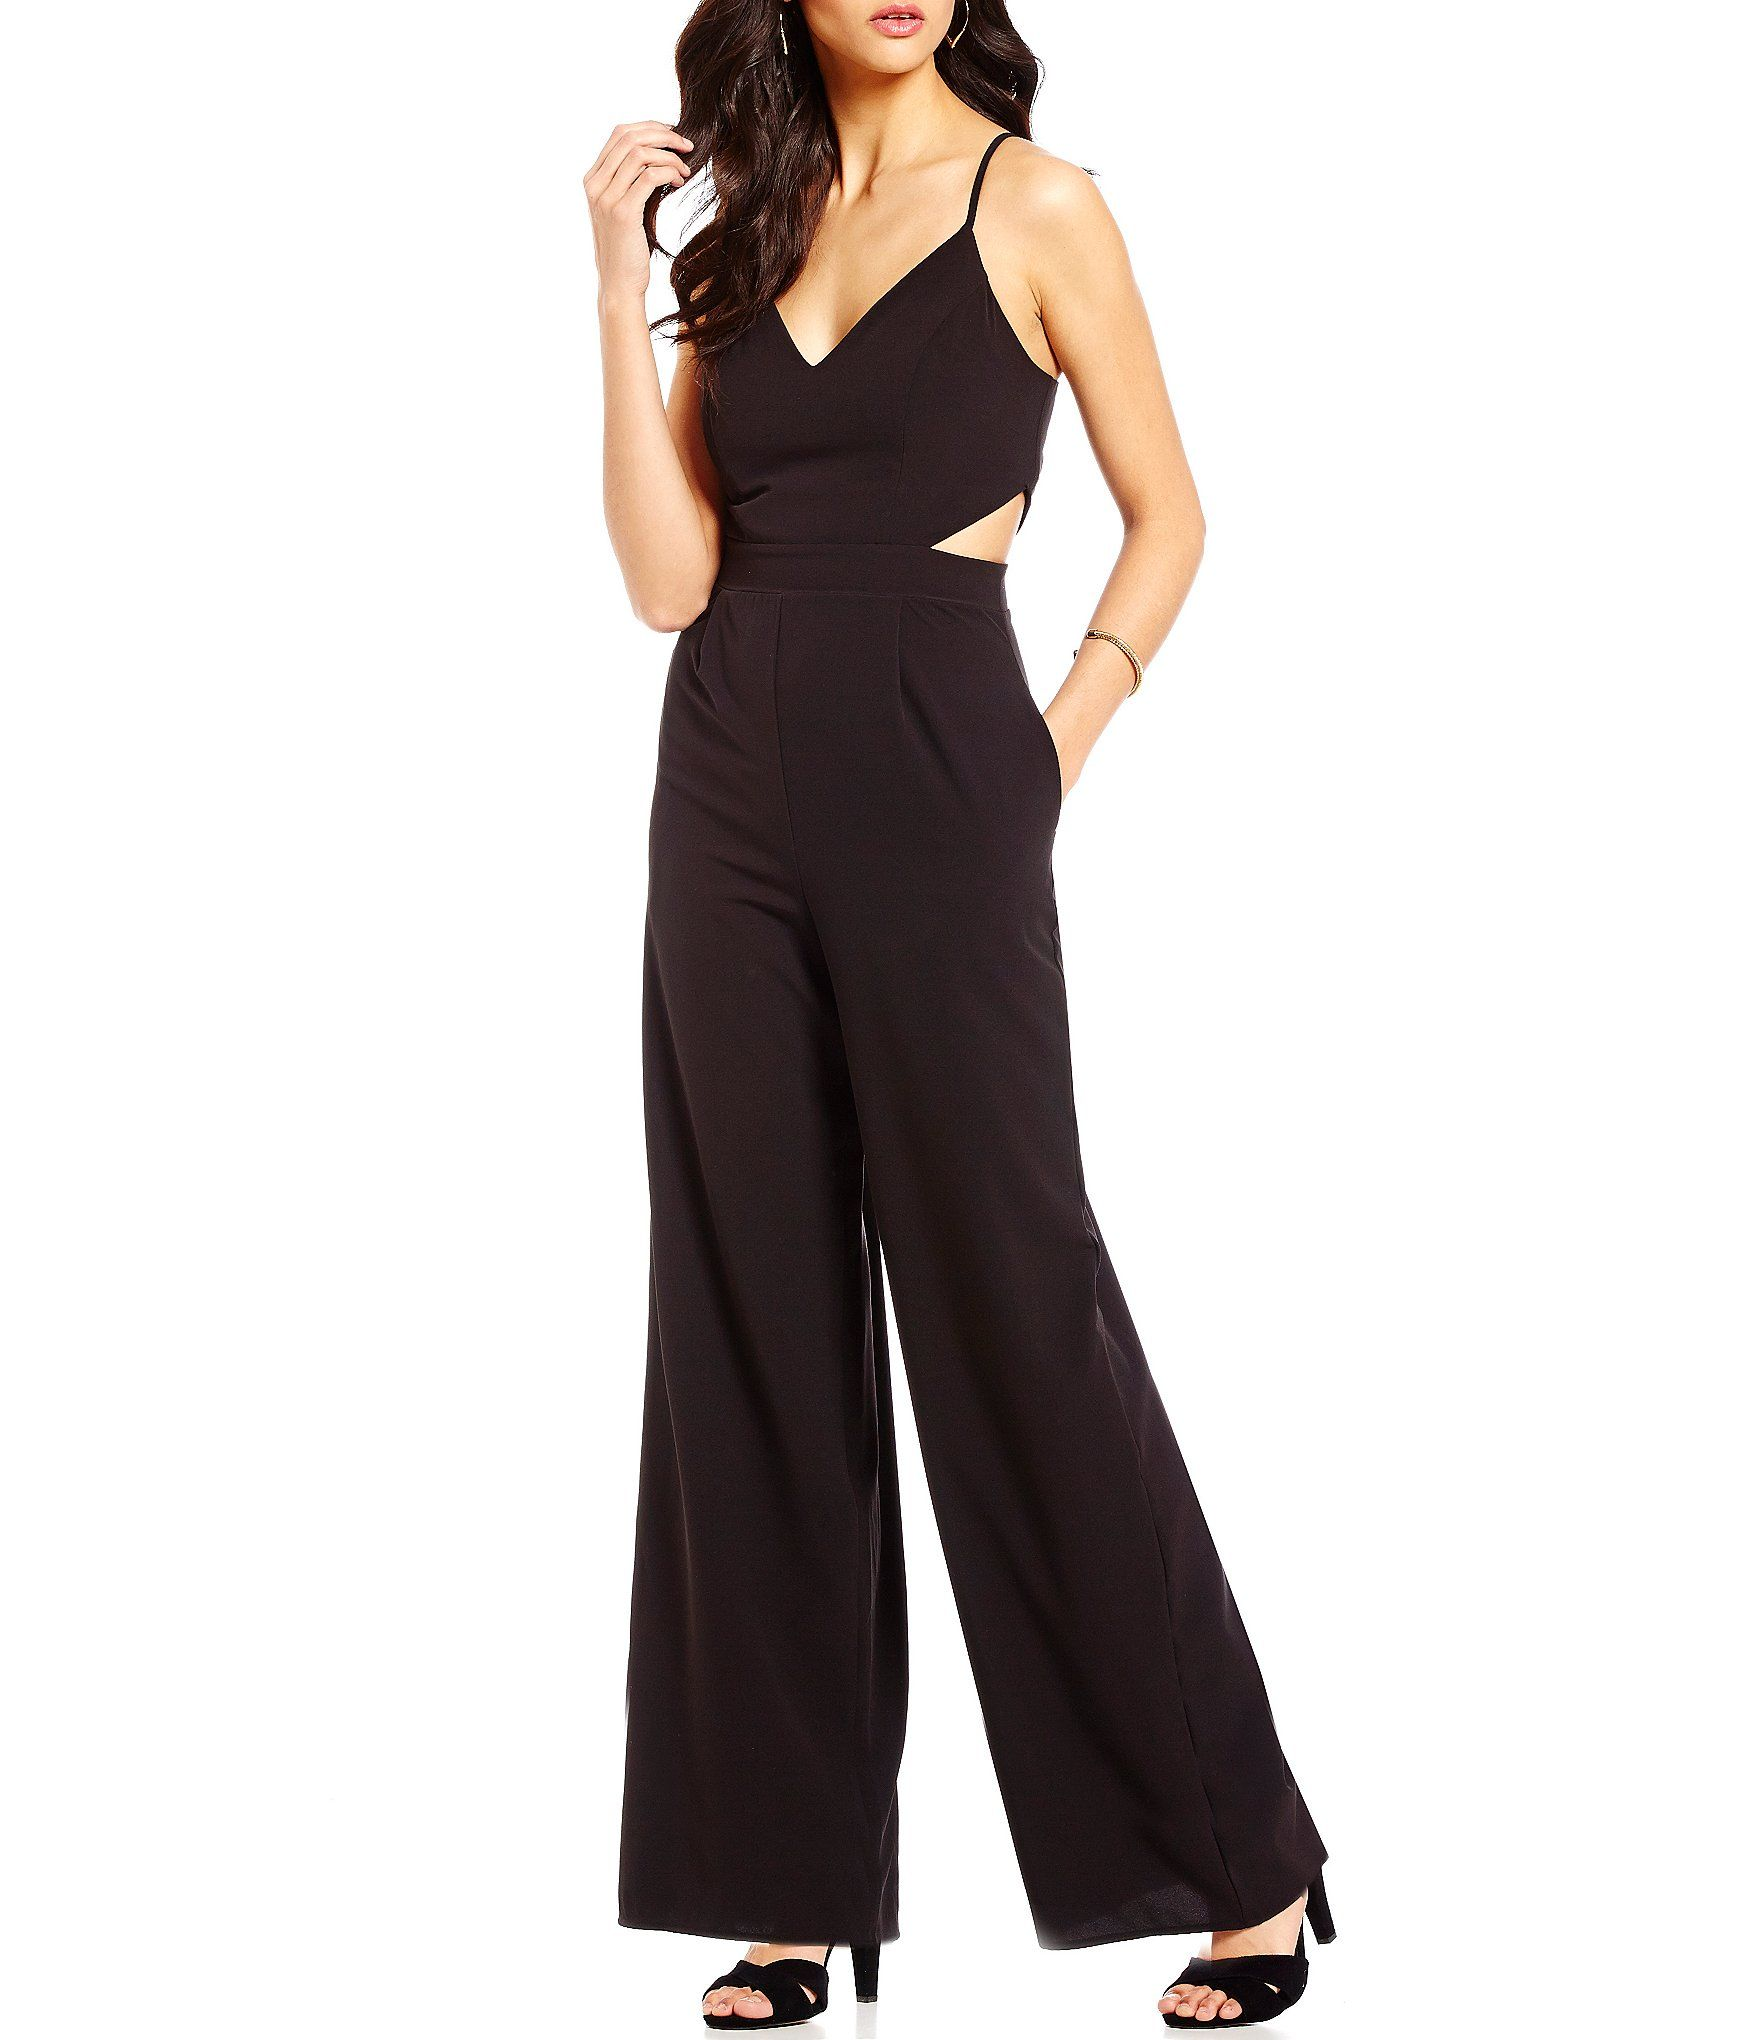 1dd65bbf04 Shop for GB Cutout Wide Leg V-Neck Jumpsuit at Dillards.com. Visit  Dillards.com to find clothing